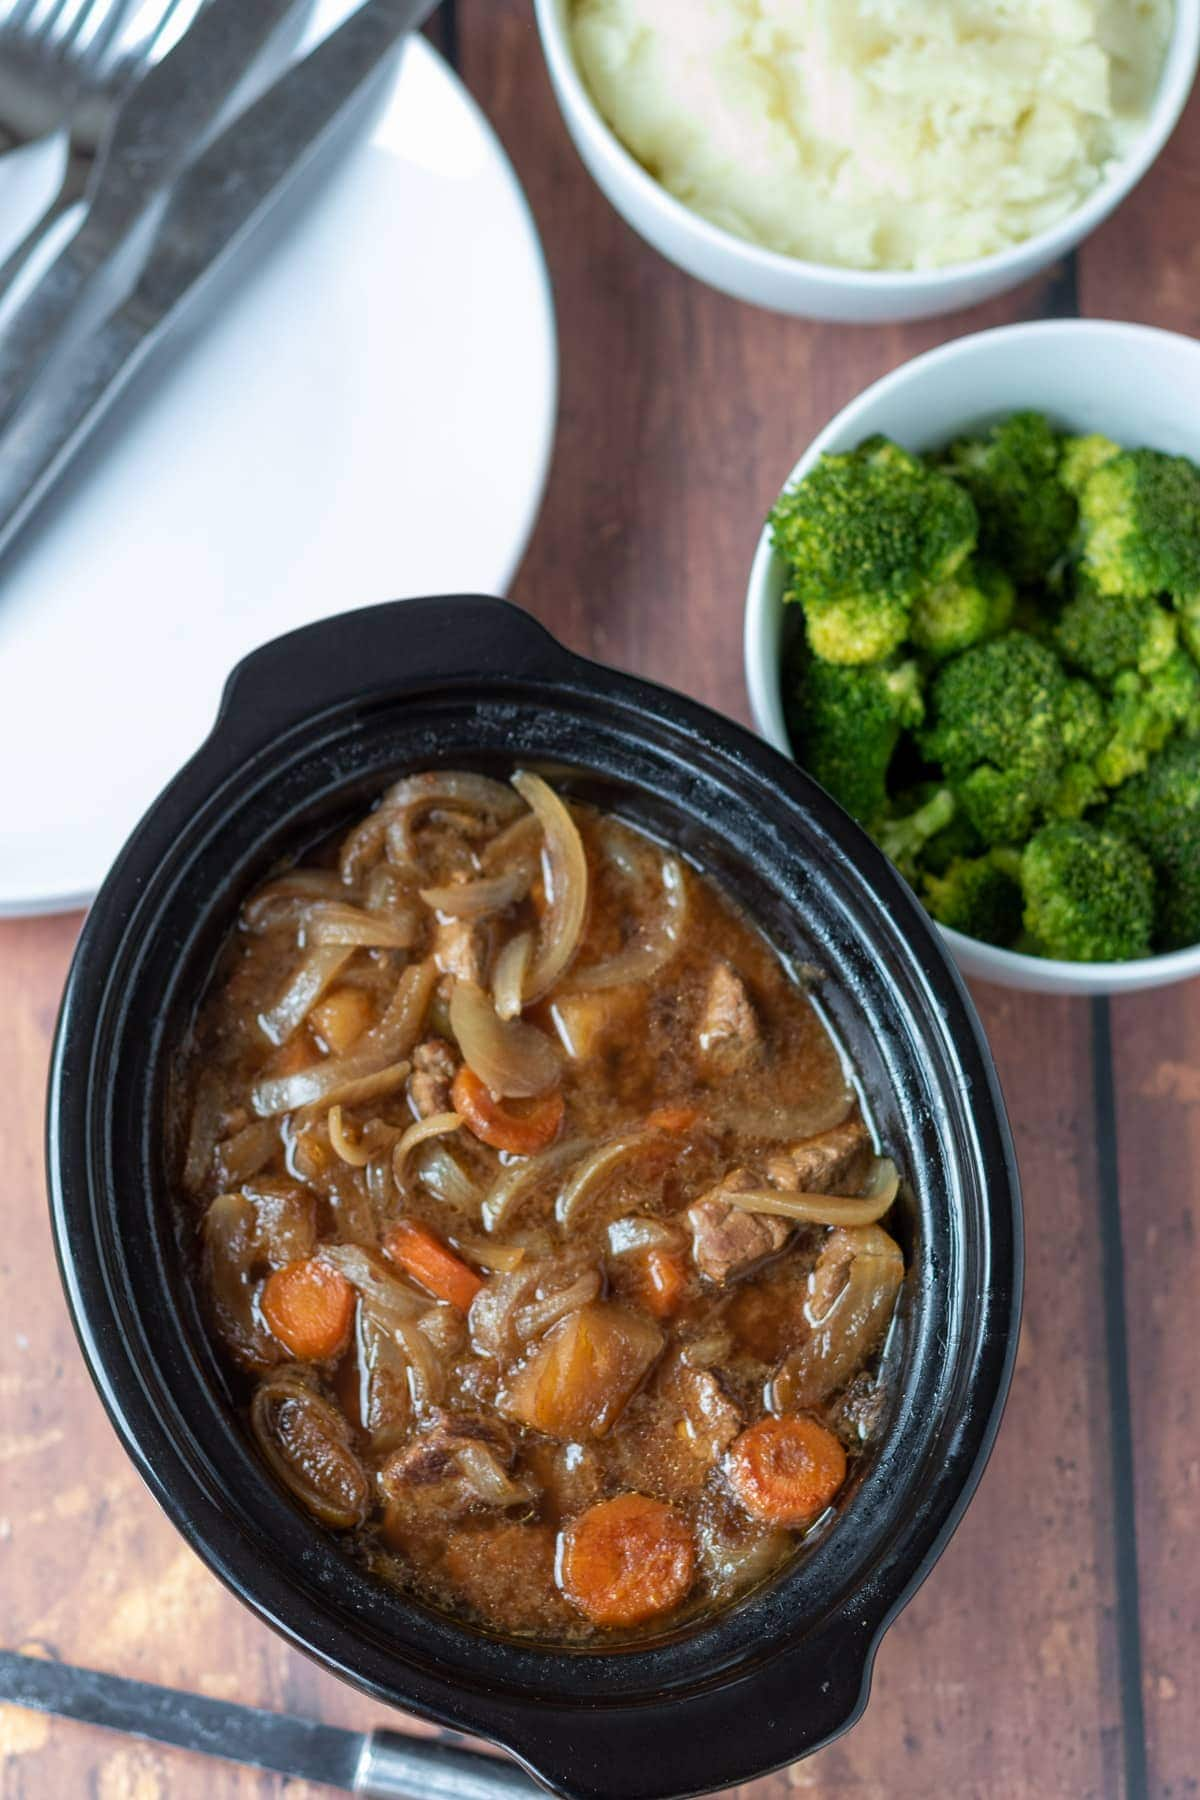 Birds eye view of slow cooker beef and ale stew. Side dishe of broccoli at the top right. Serving plates with cutlery on to the top left.